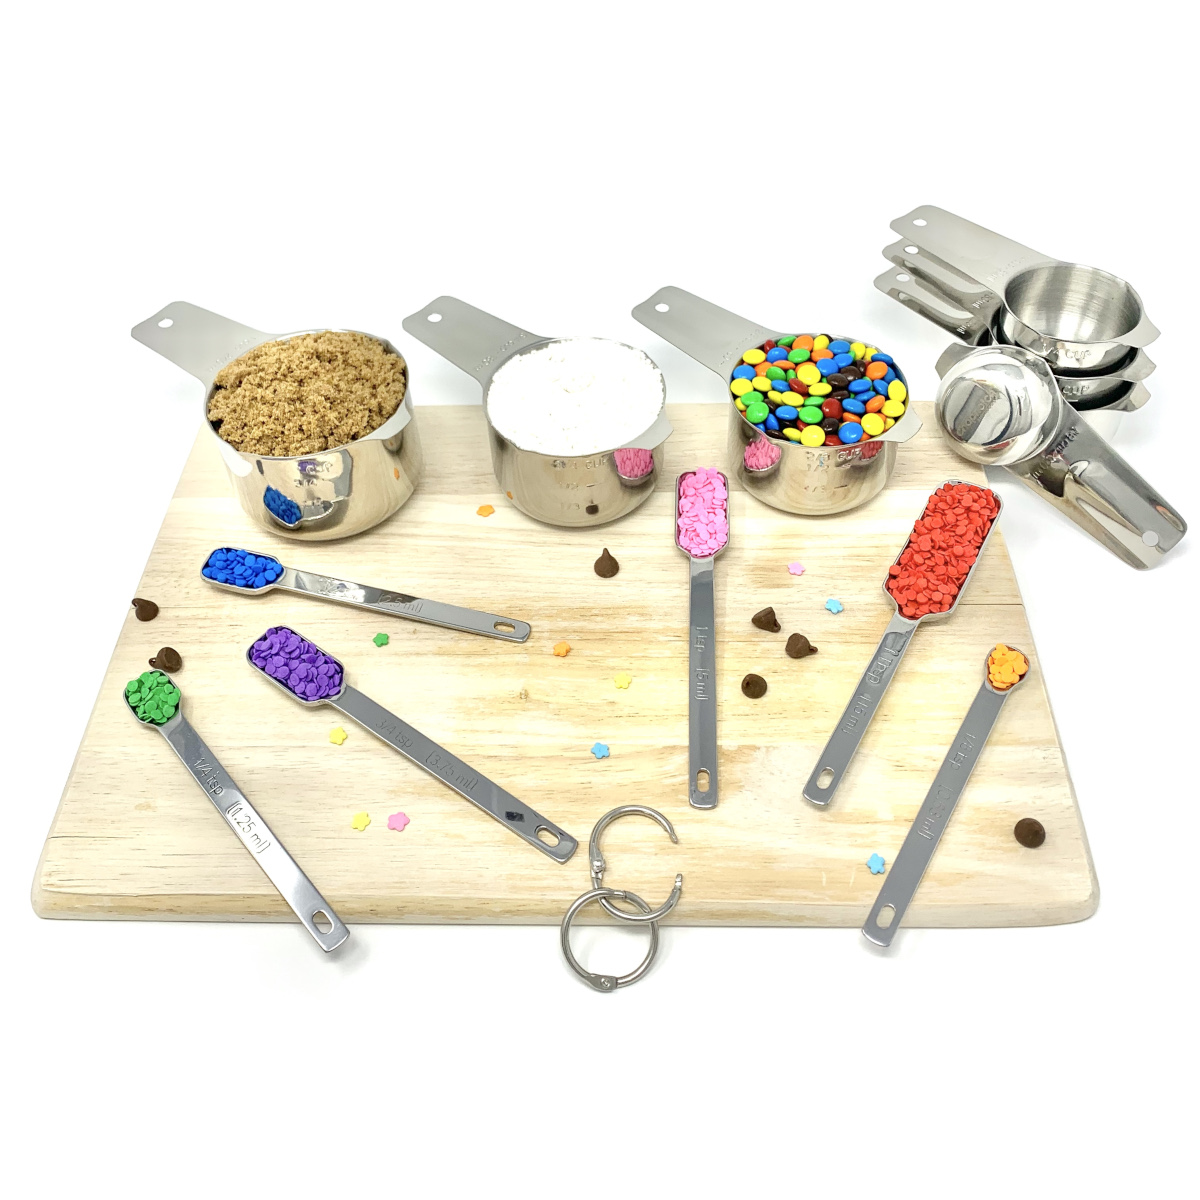 The complete measuring set on a cutting board with baking ingredients.